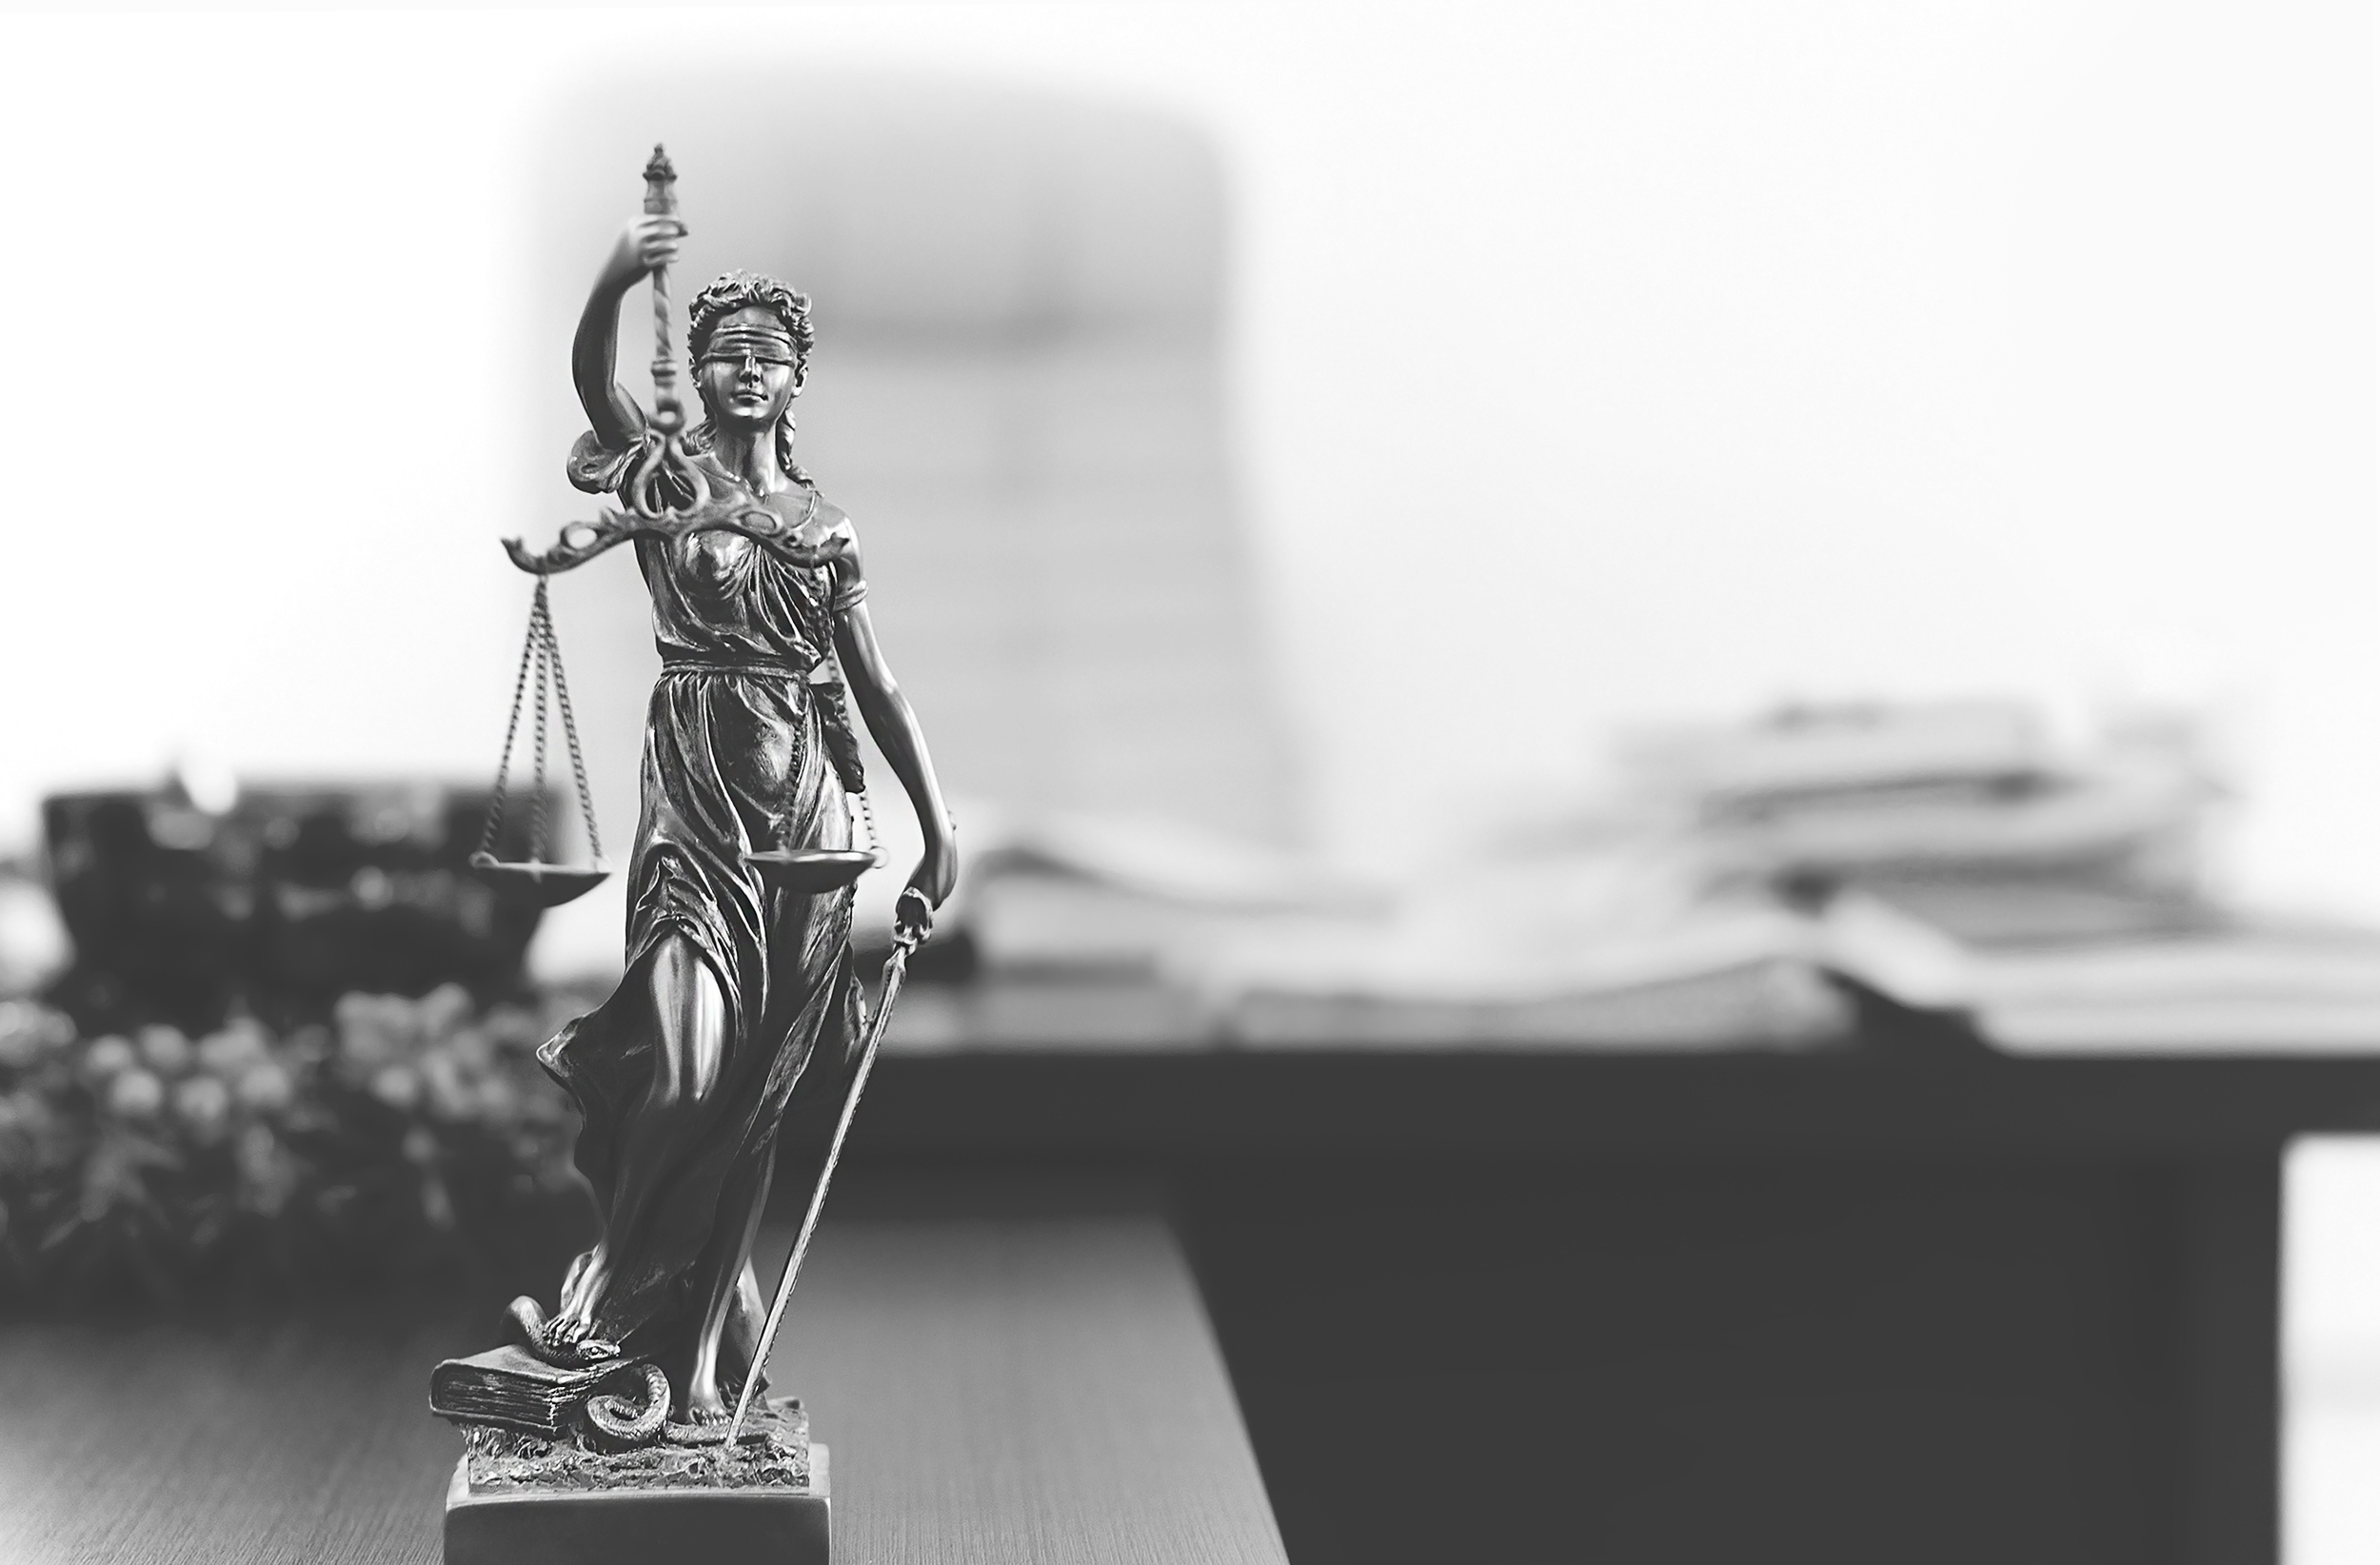 scales of justice figure on desk